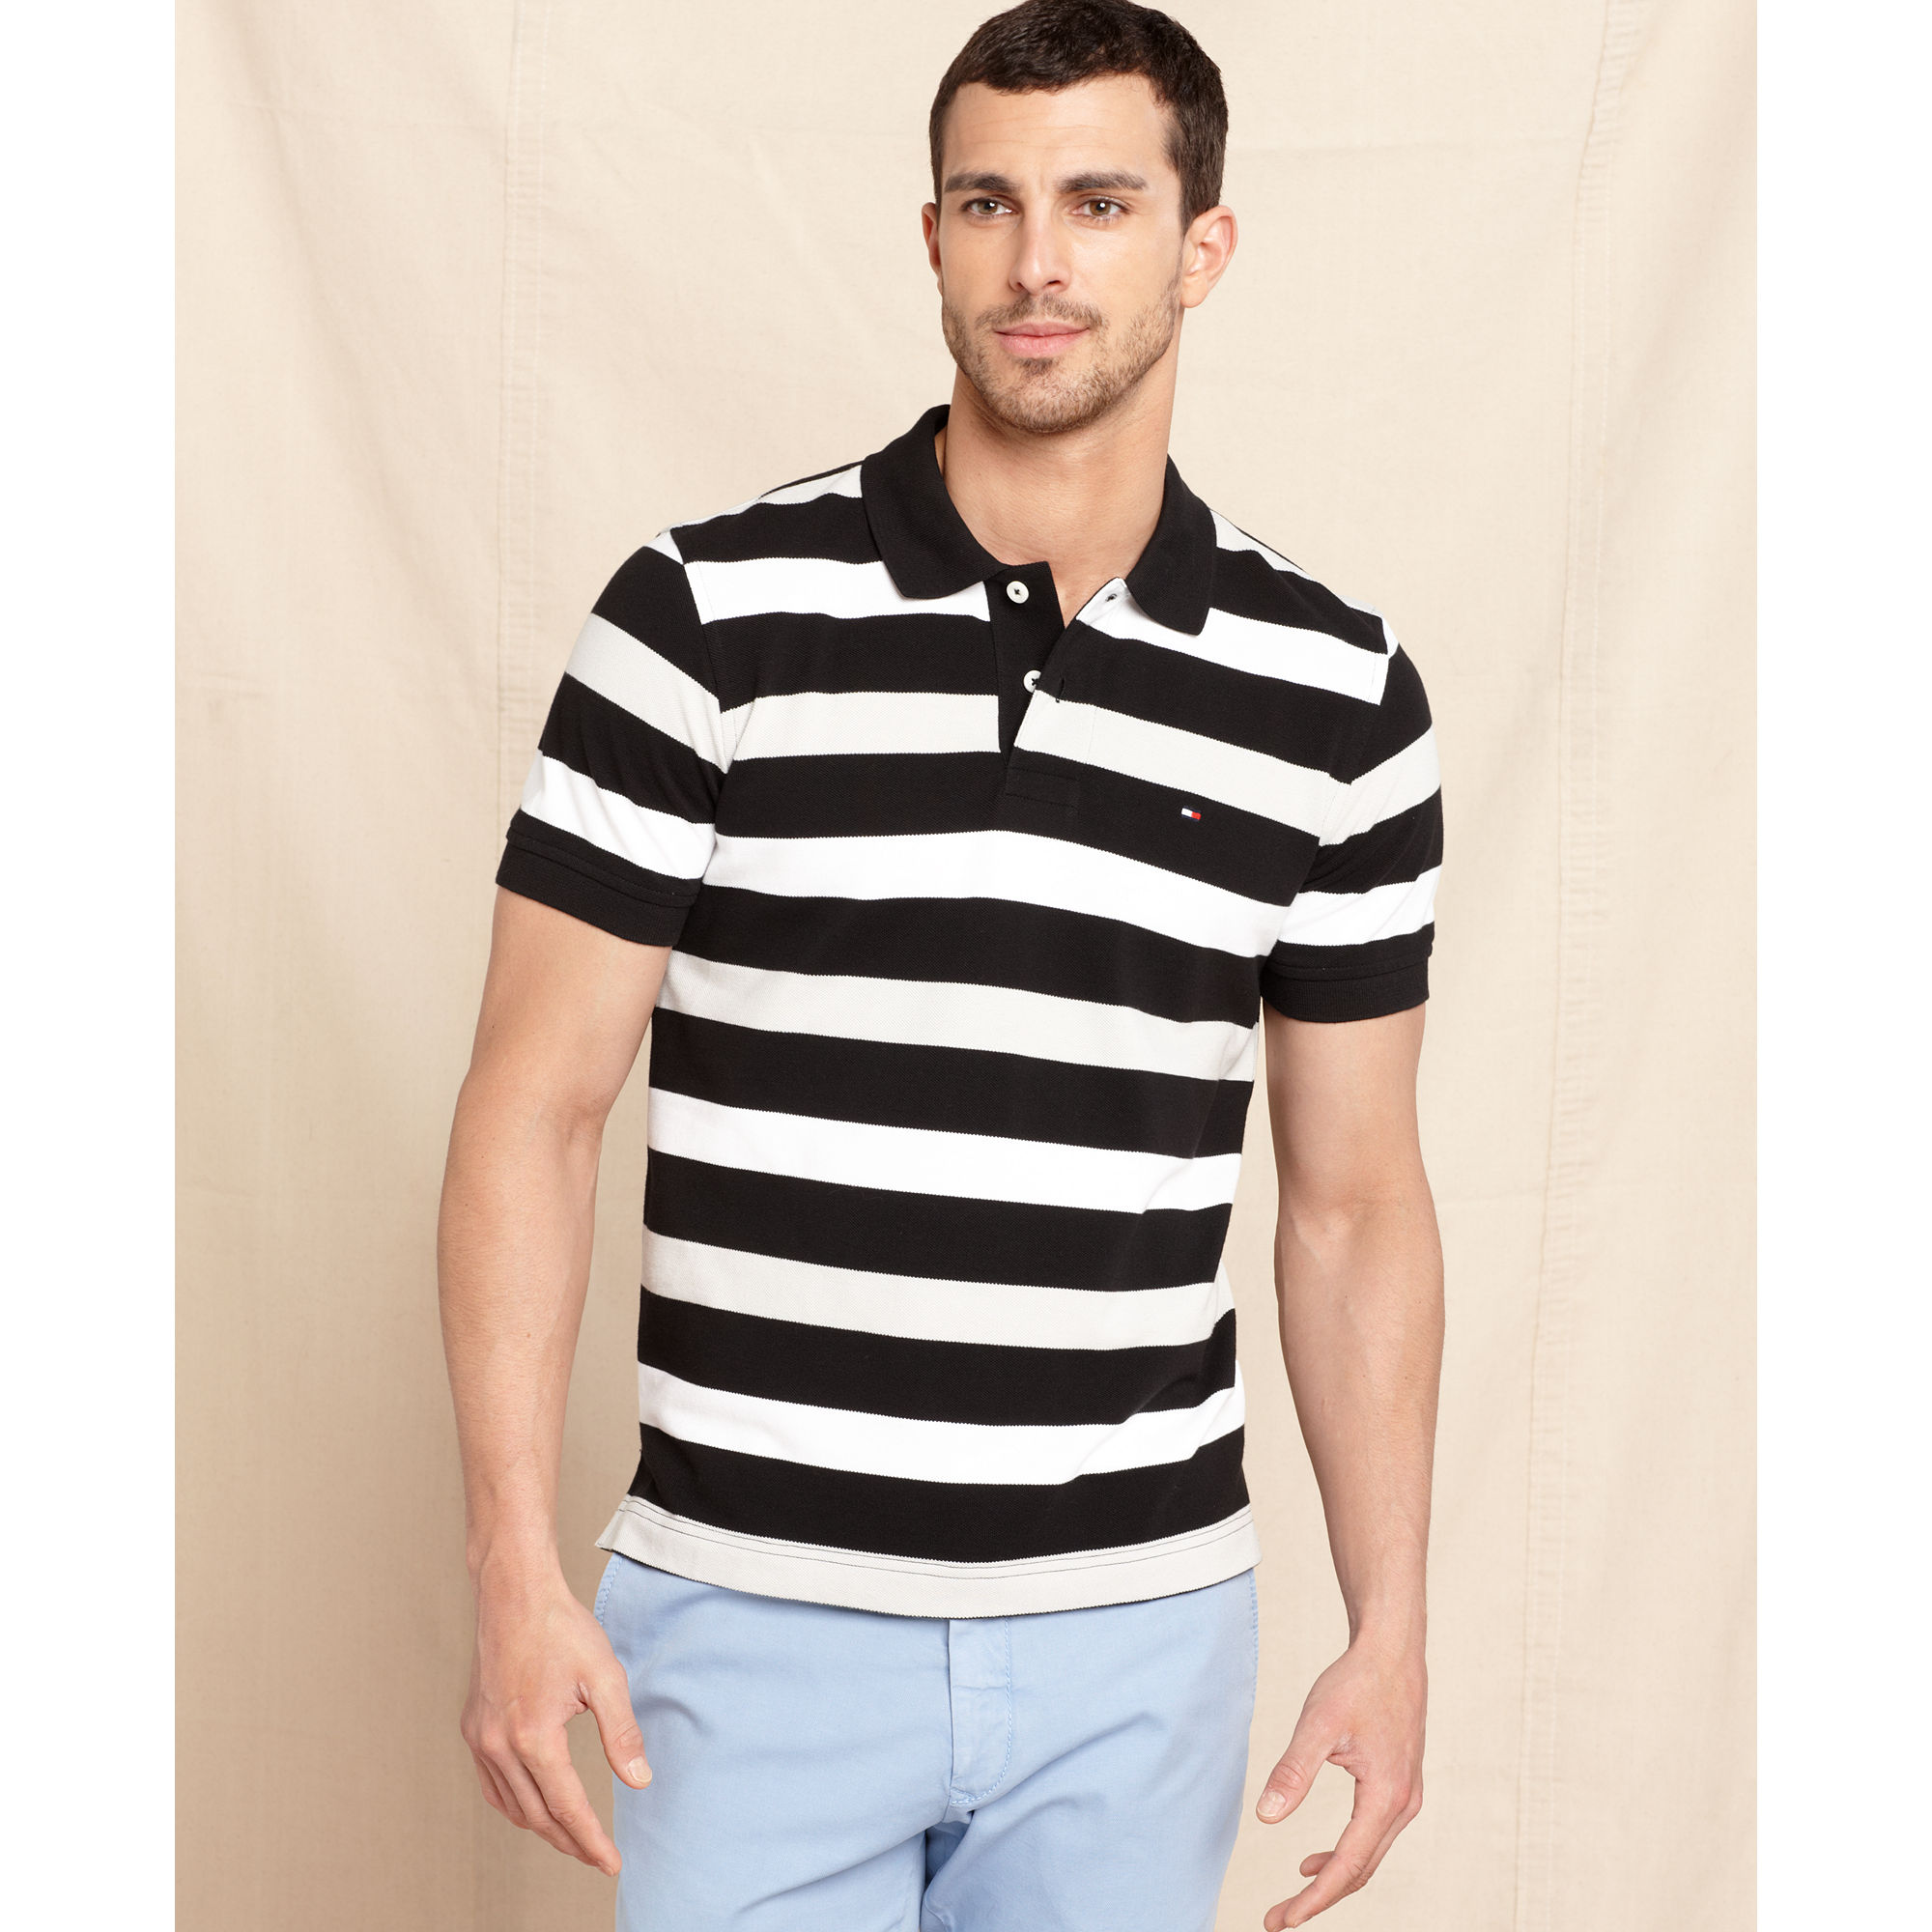 9ba3c2ca Tommy Hilfiger Cloverville Slim Fit Stripe Polo Shirt in Black for ...